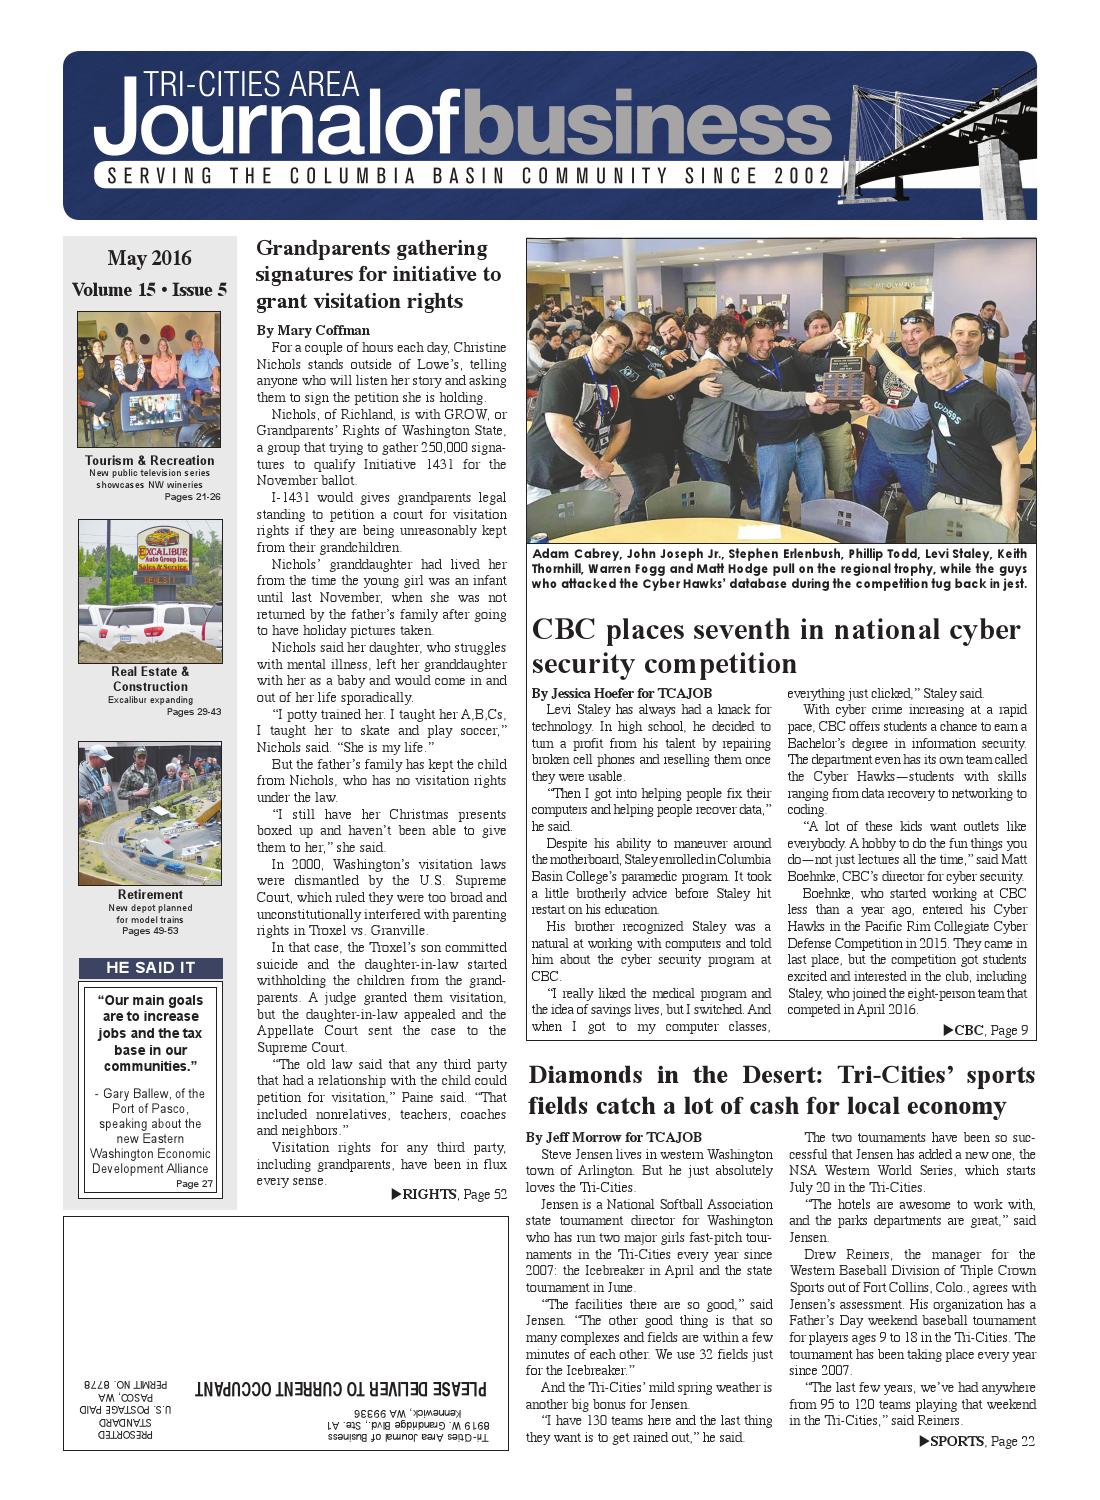 Tri cities area journal of business may 2016 by tri for Home depot richland wa